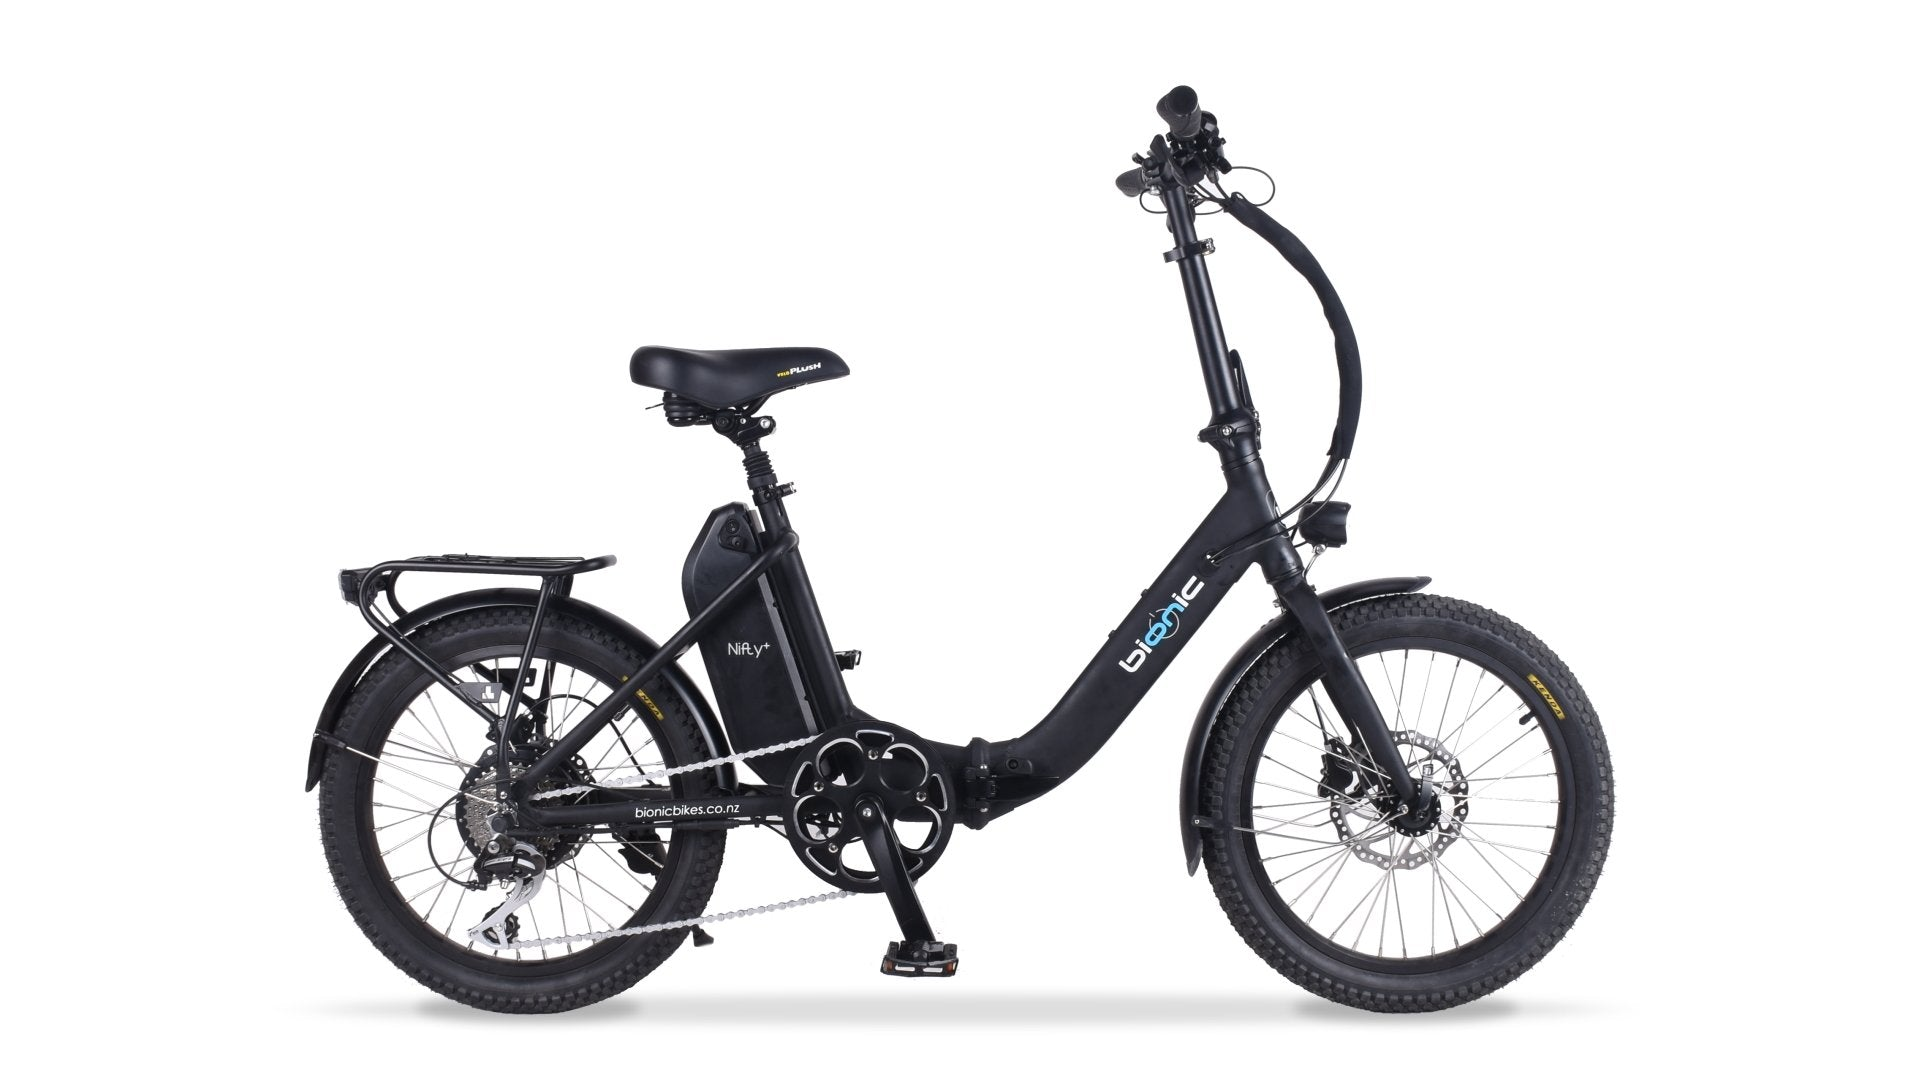 Bionic Nifty Plus Folding Bike